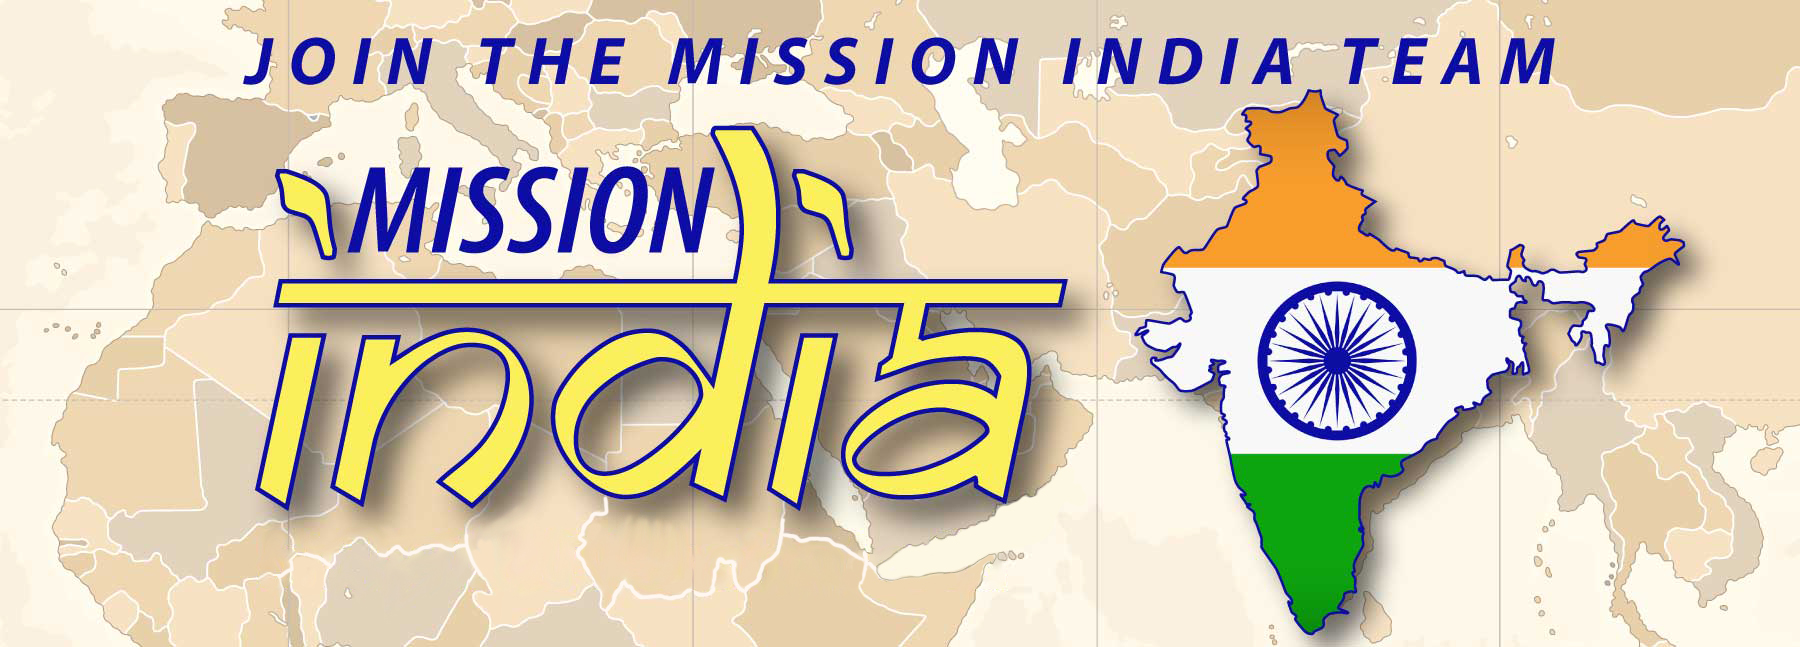 Mission India Graphic - No Website Link